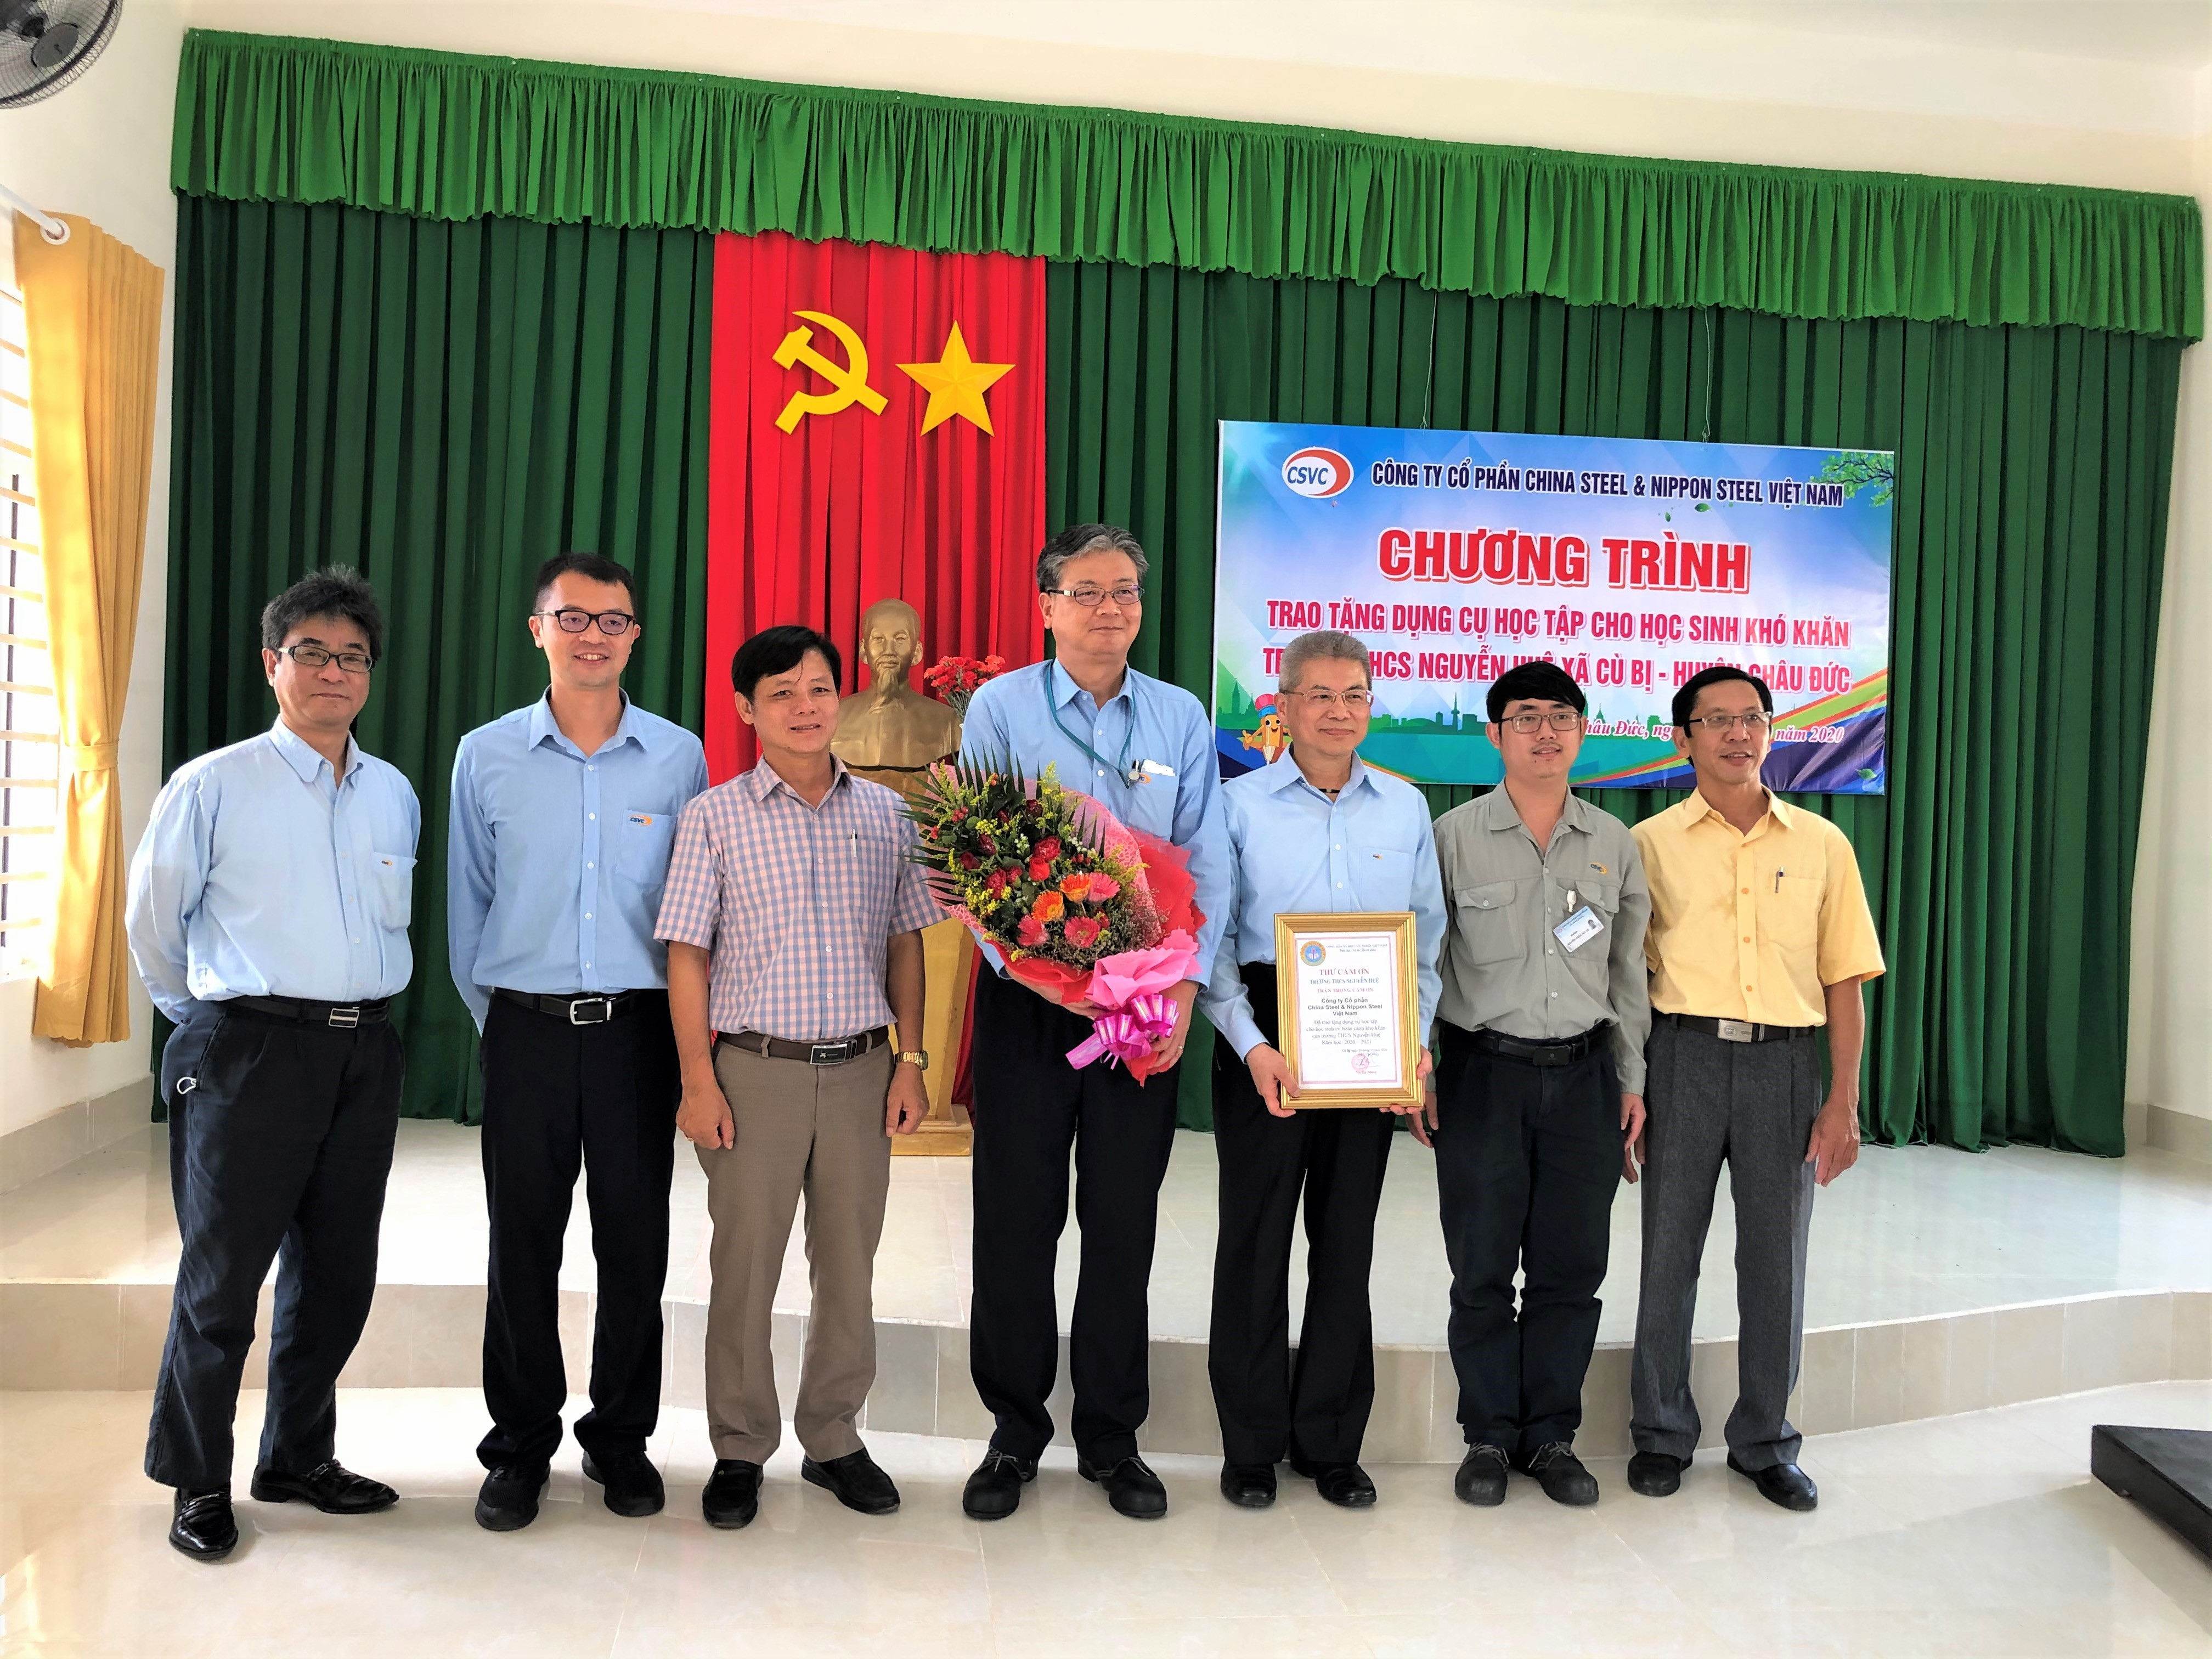 GIVING STATIONERY FOR STUDENTS WITH DIFFICULT CIRCUMSTANCE AT NGUYEN HUE SECONDARY SCHOOL, CU BI COMMUNE, CHAU DUC DISTRICT